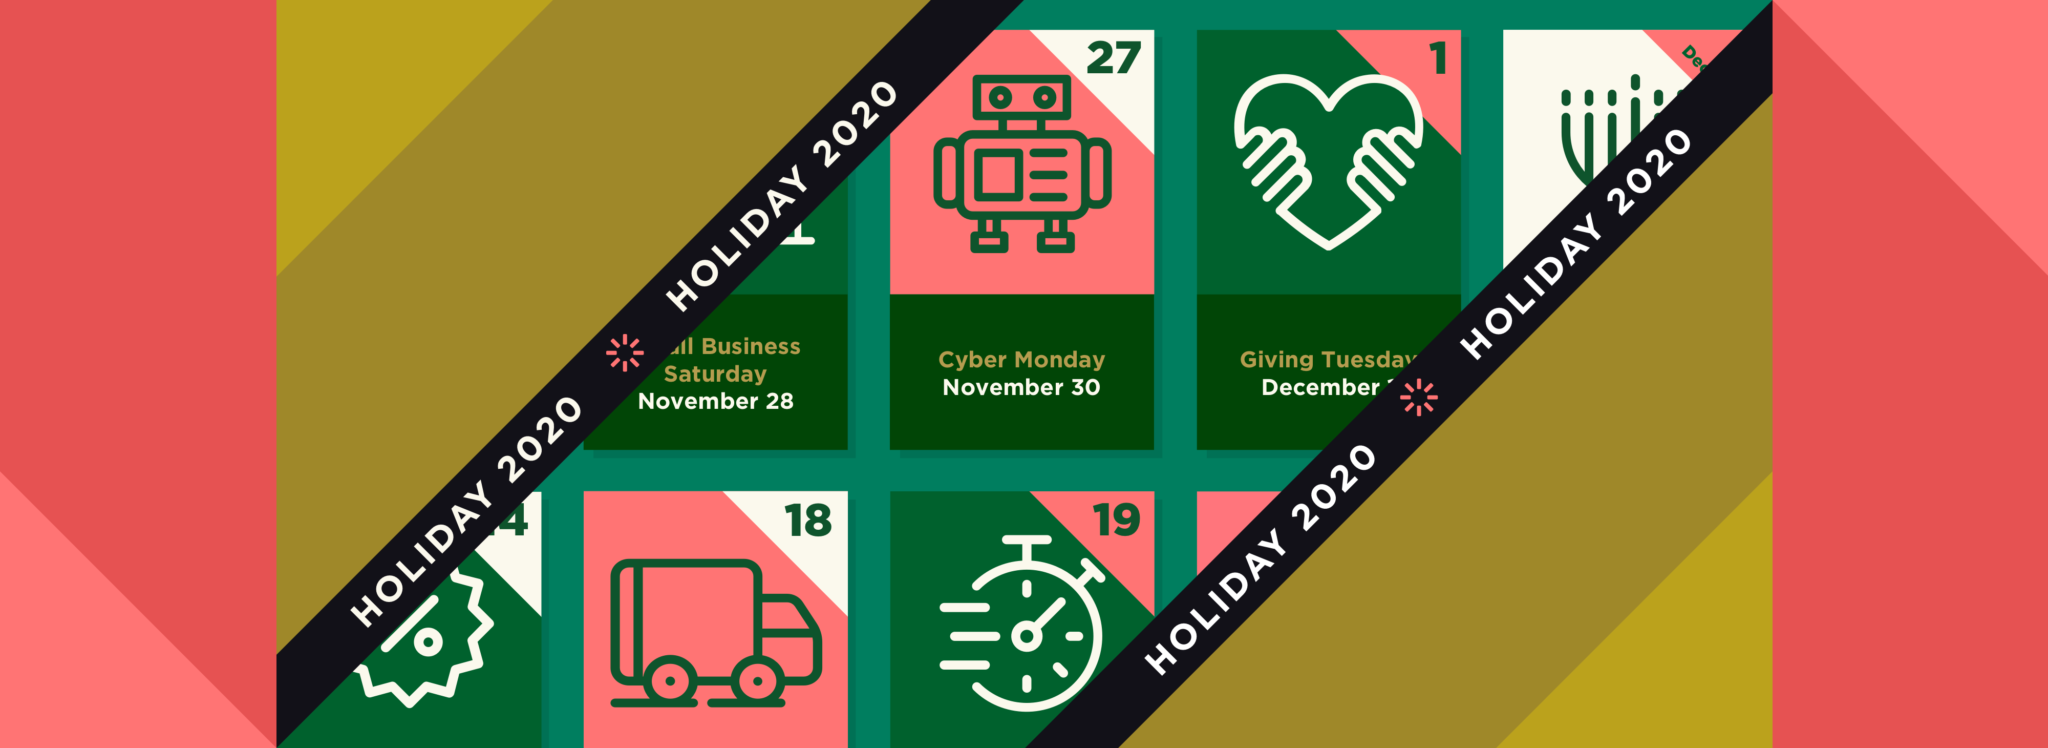 BigCommerce's 2020 Guide to Holiday Planning feature image